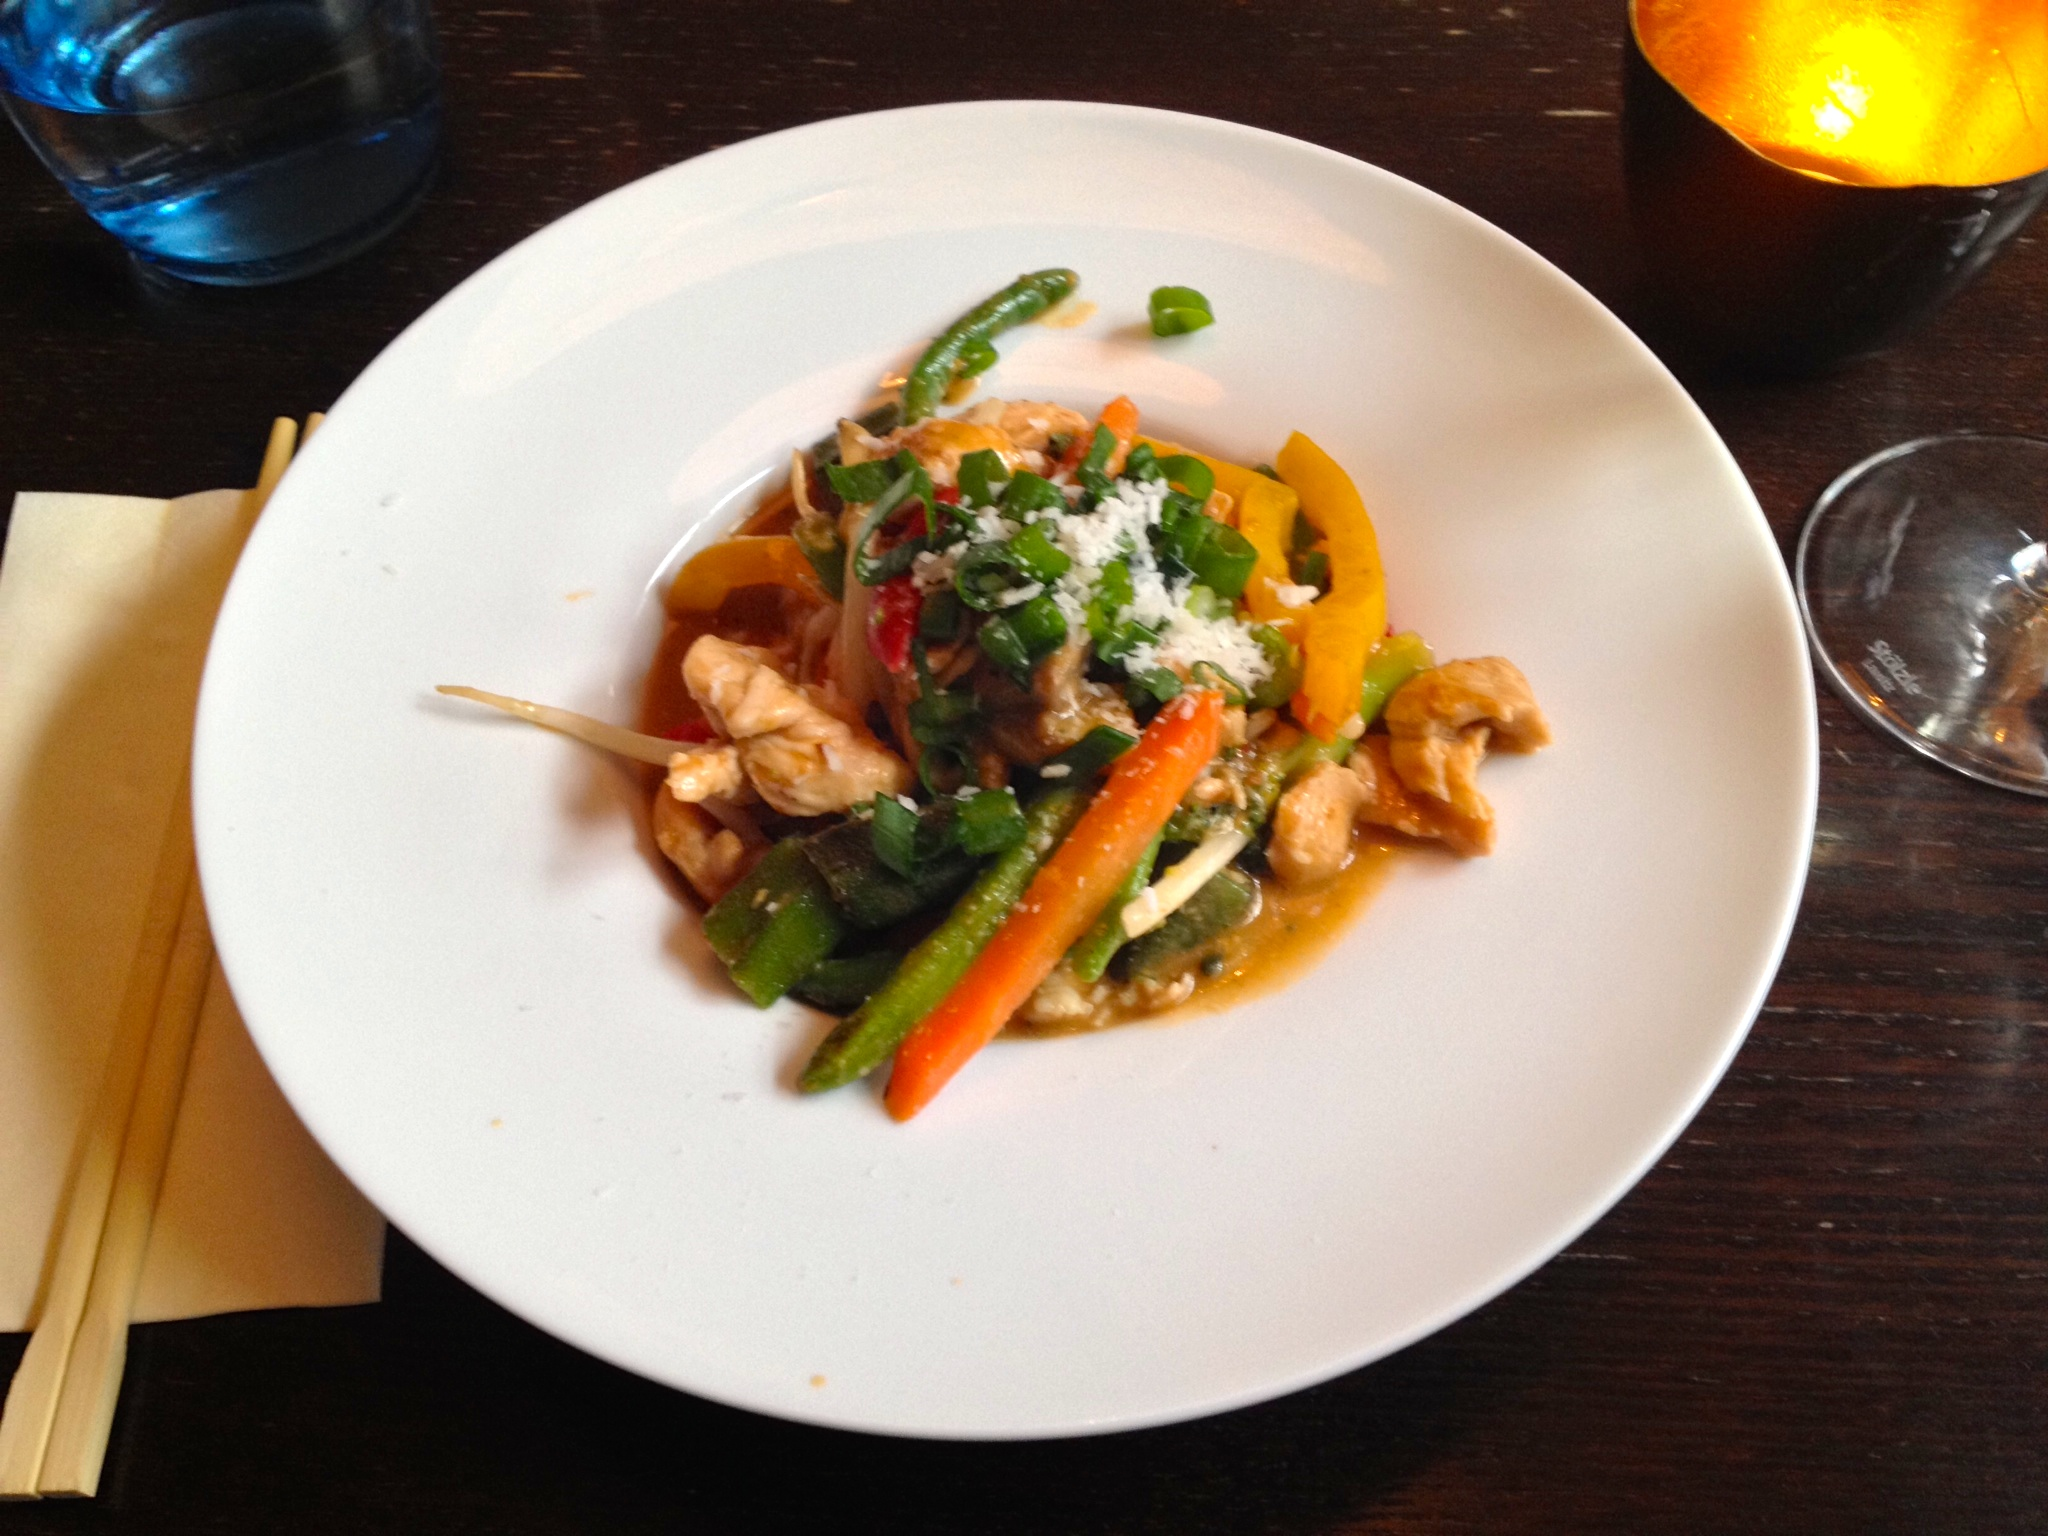 Chicken with vegetables in a peanut sauce